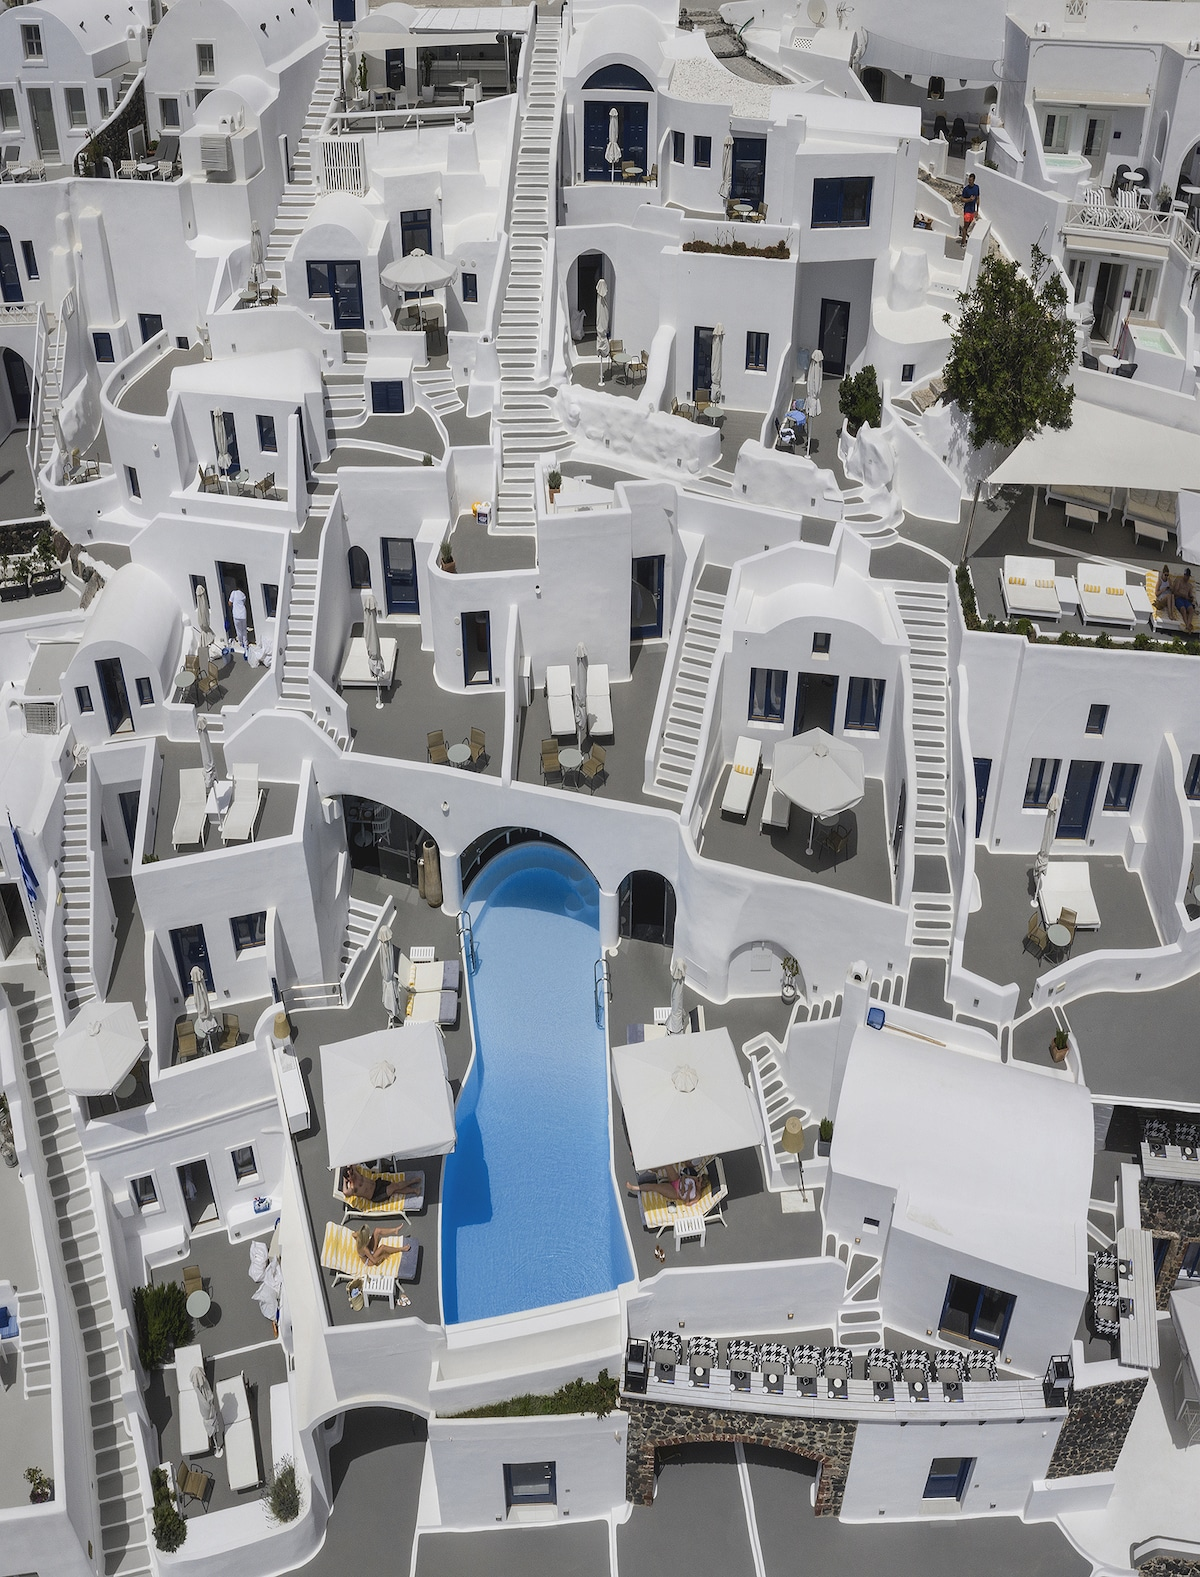 Aerial view of homes in Greece